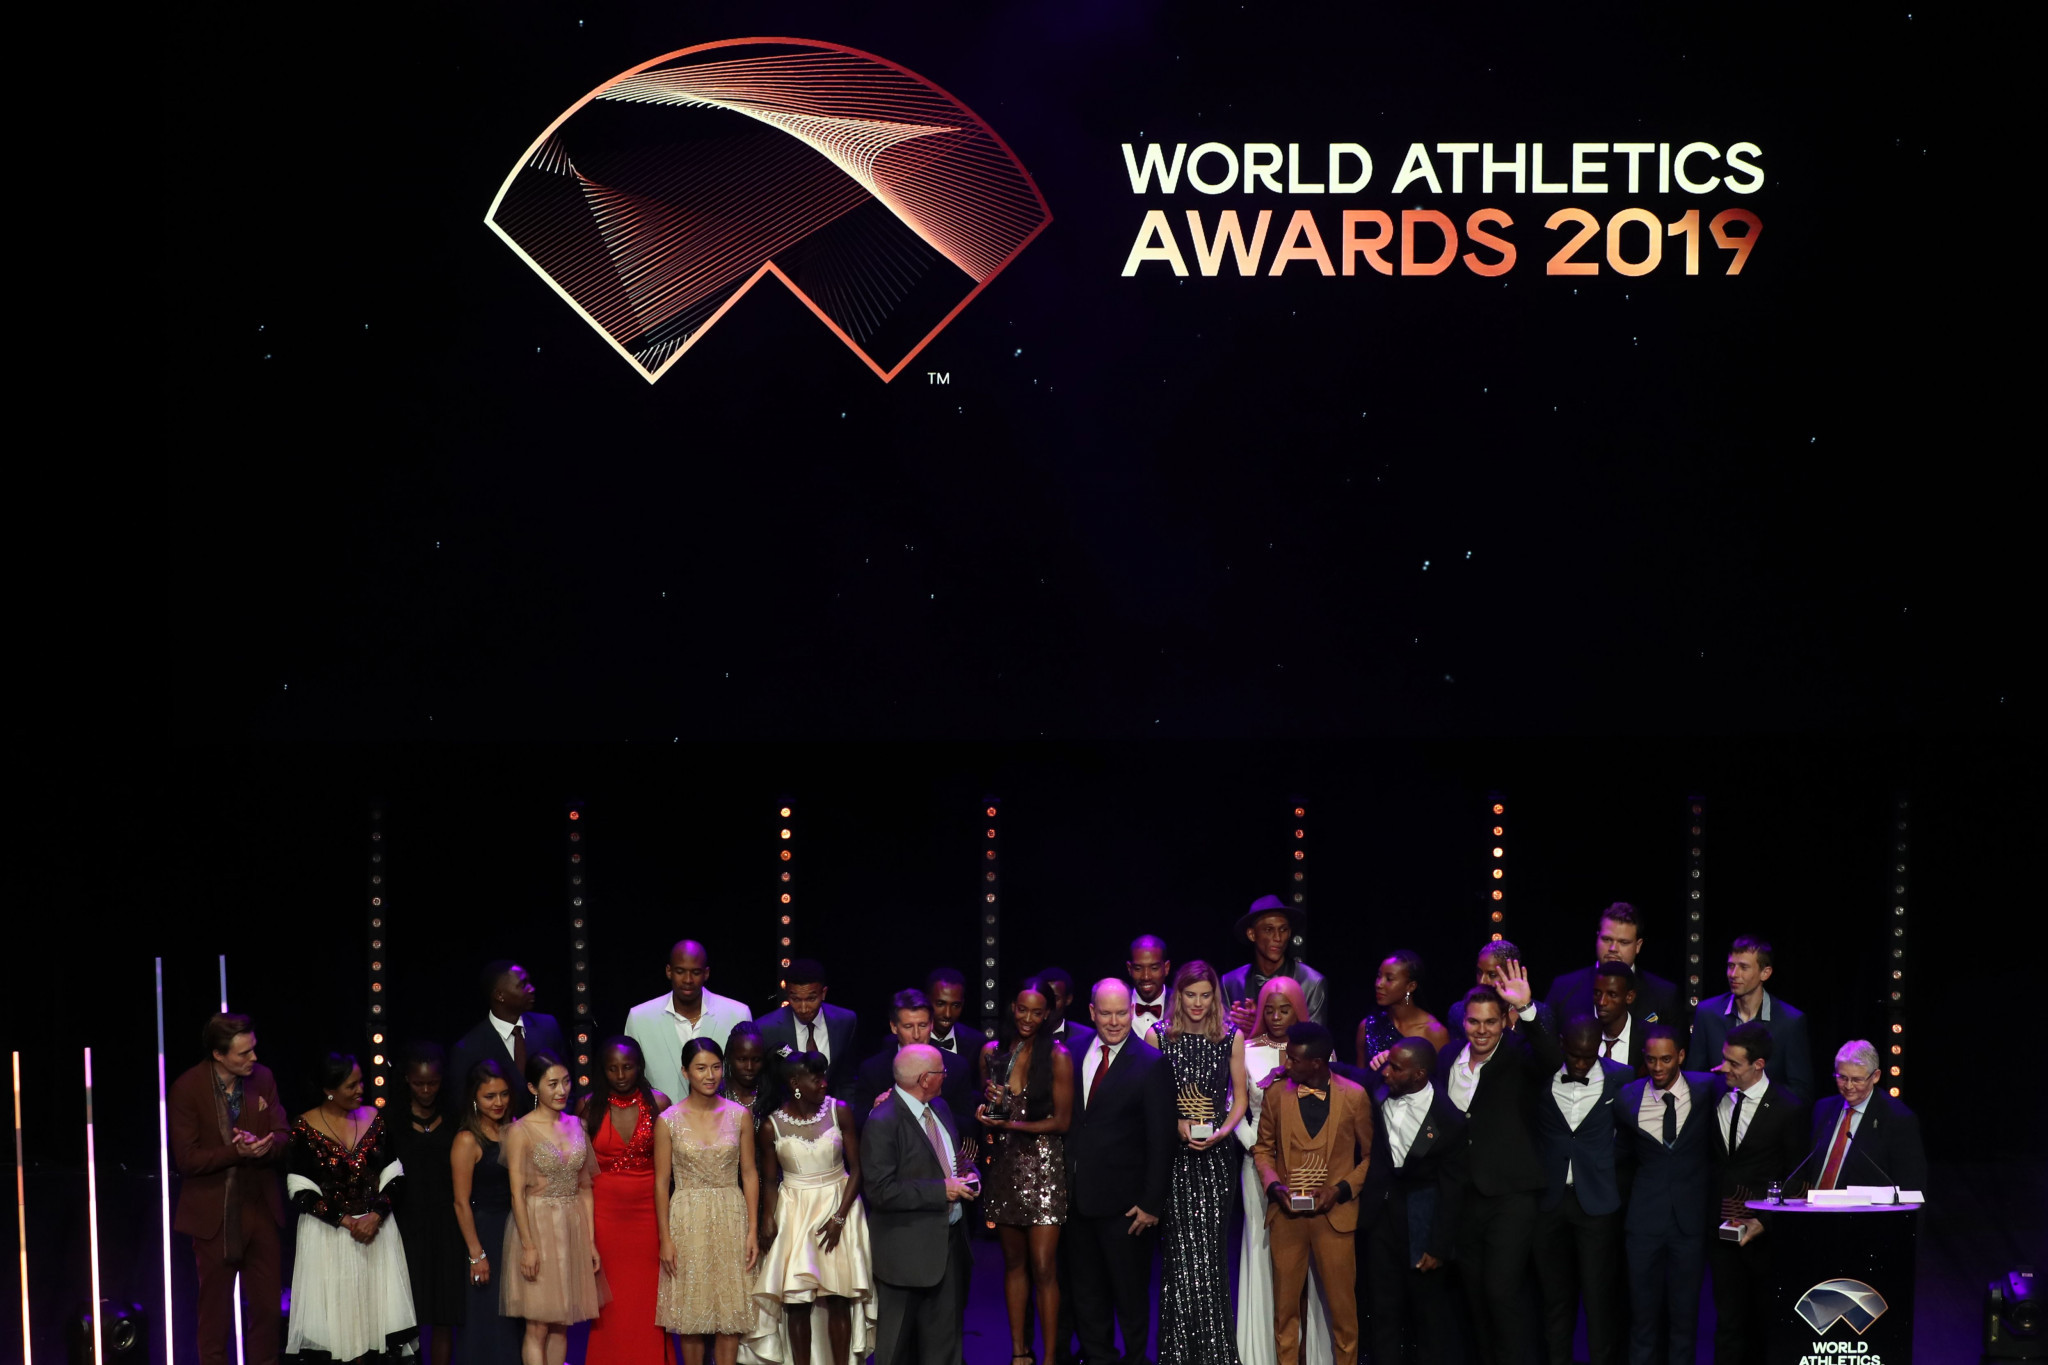 World Athletics Awards to be virtual event in 2020